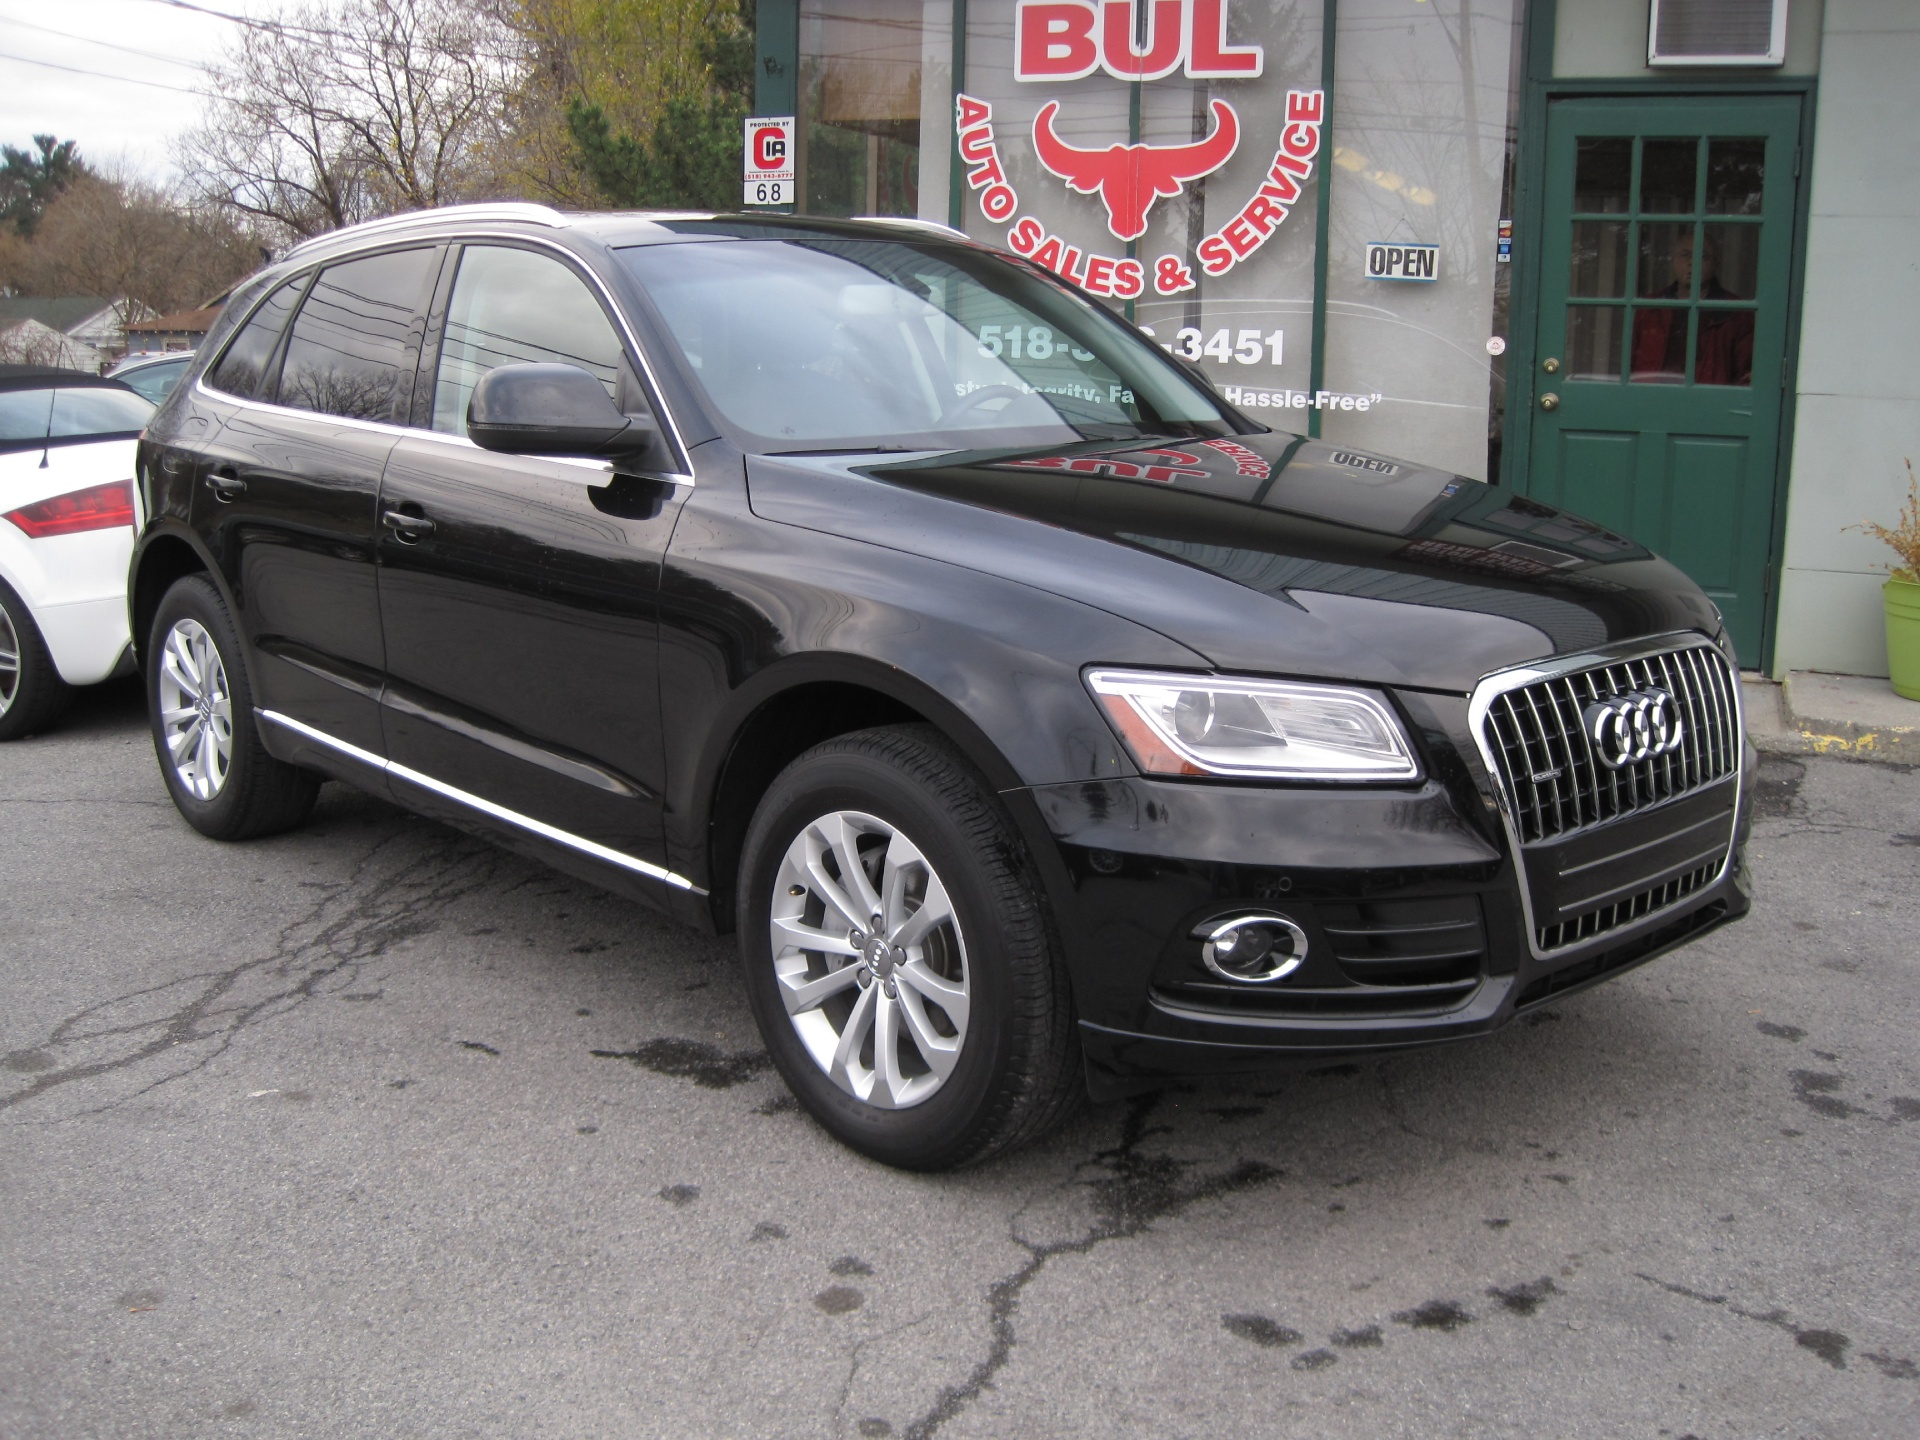 2014 audi q5 2 0t quattro premium plus loaded with options stock 15167 for sale near albany. Black Bedroom Furniture Sets. Home Design Ideas